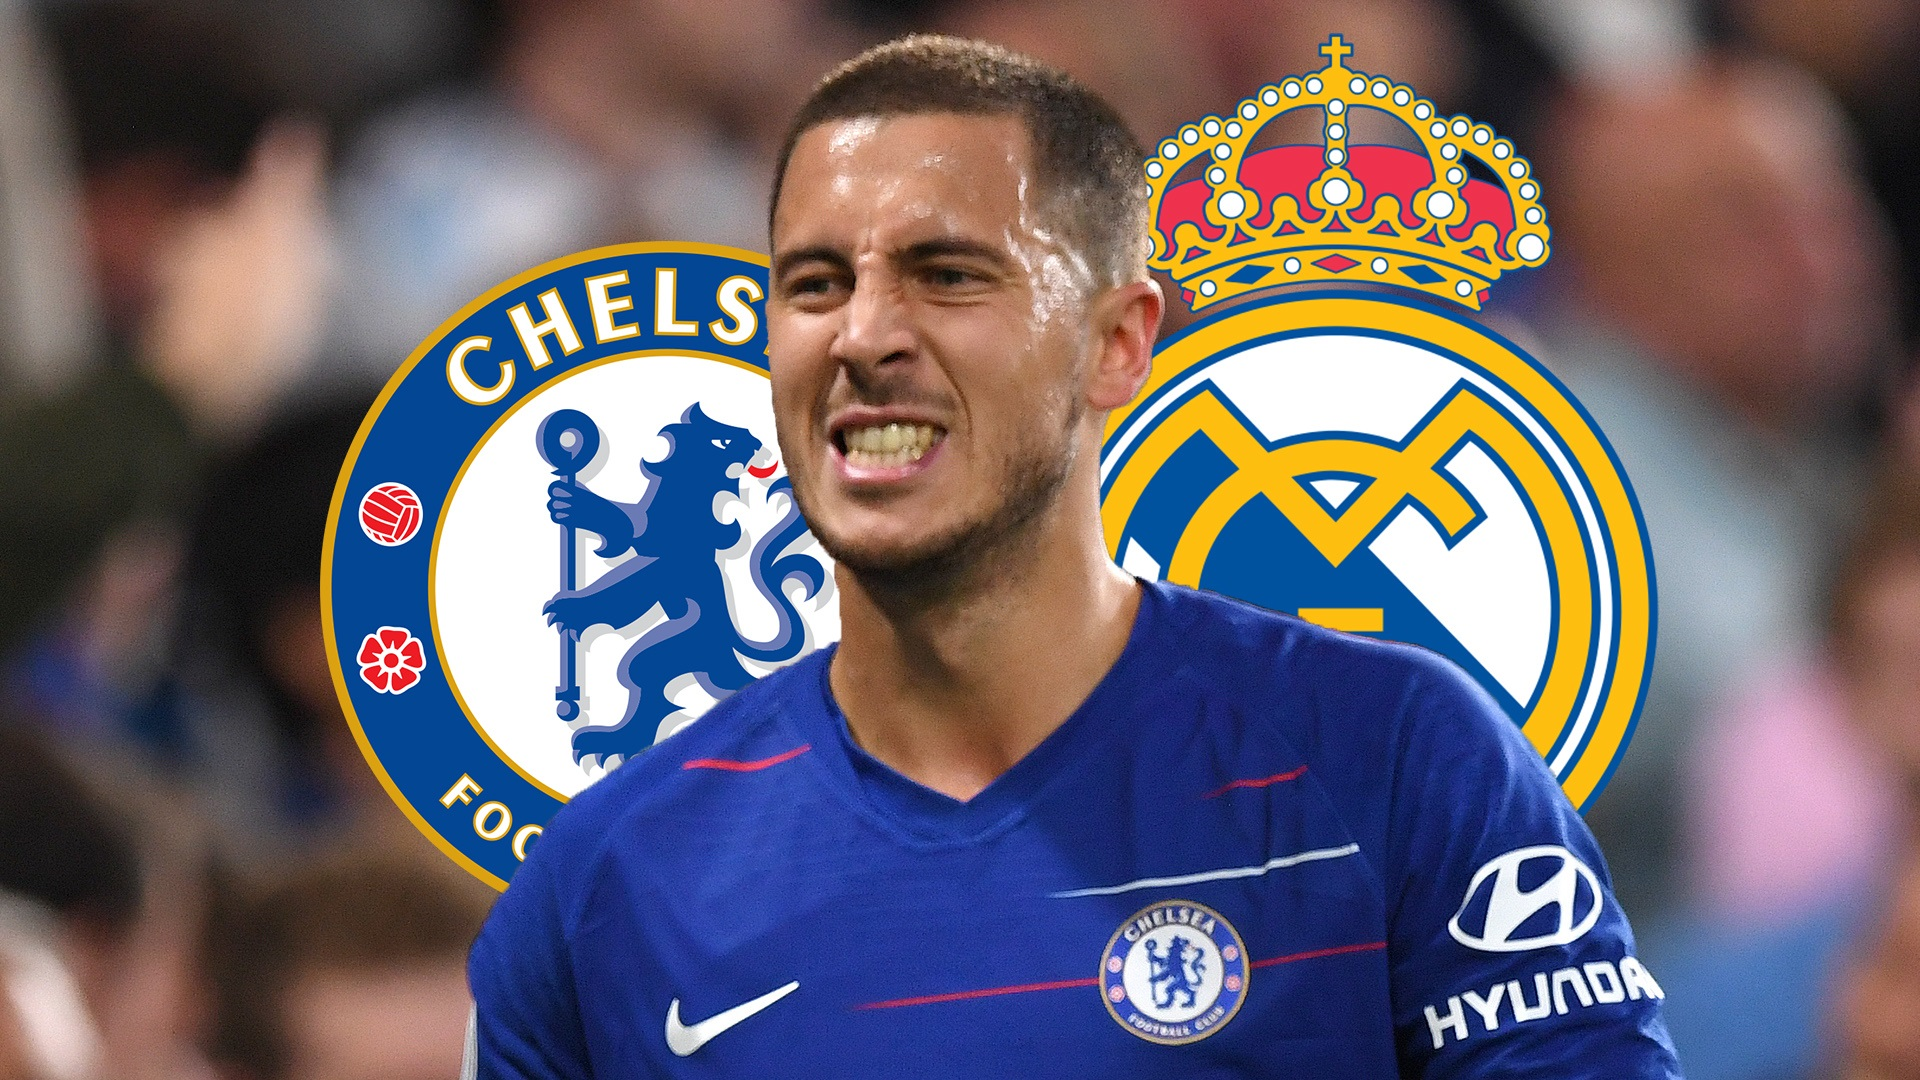 Hazard torn between Chelsea and Real Madrid